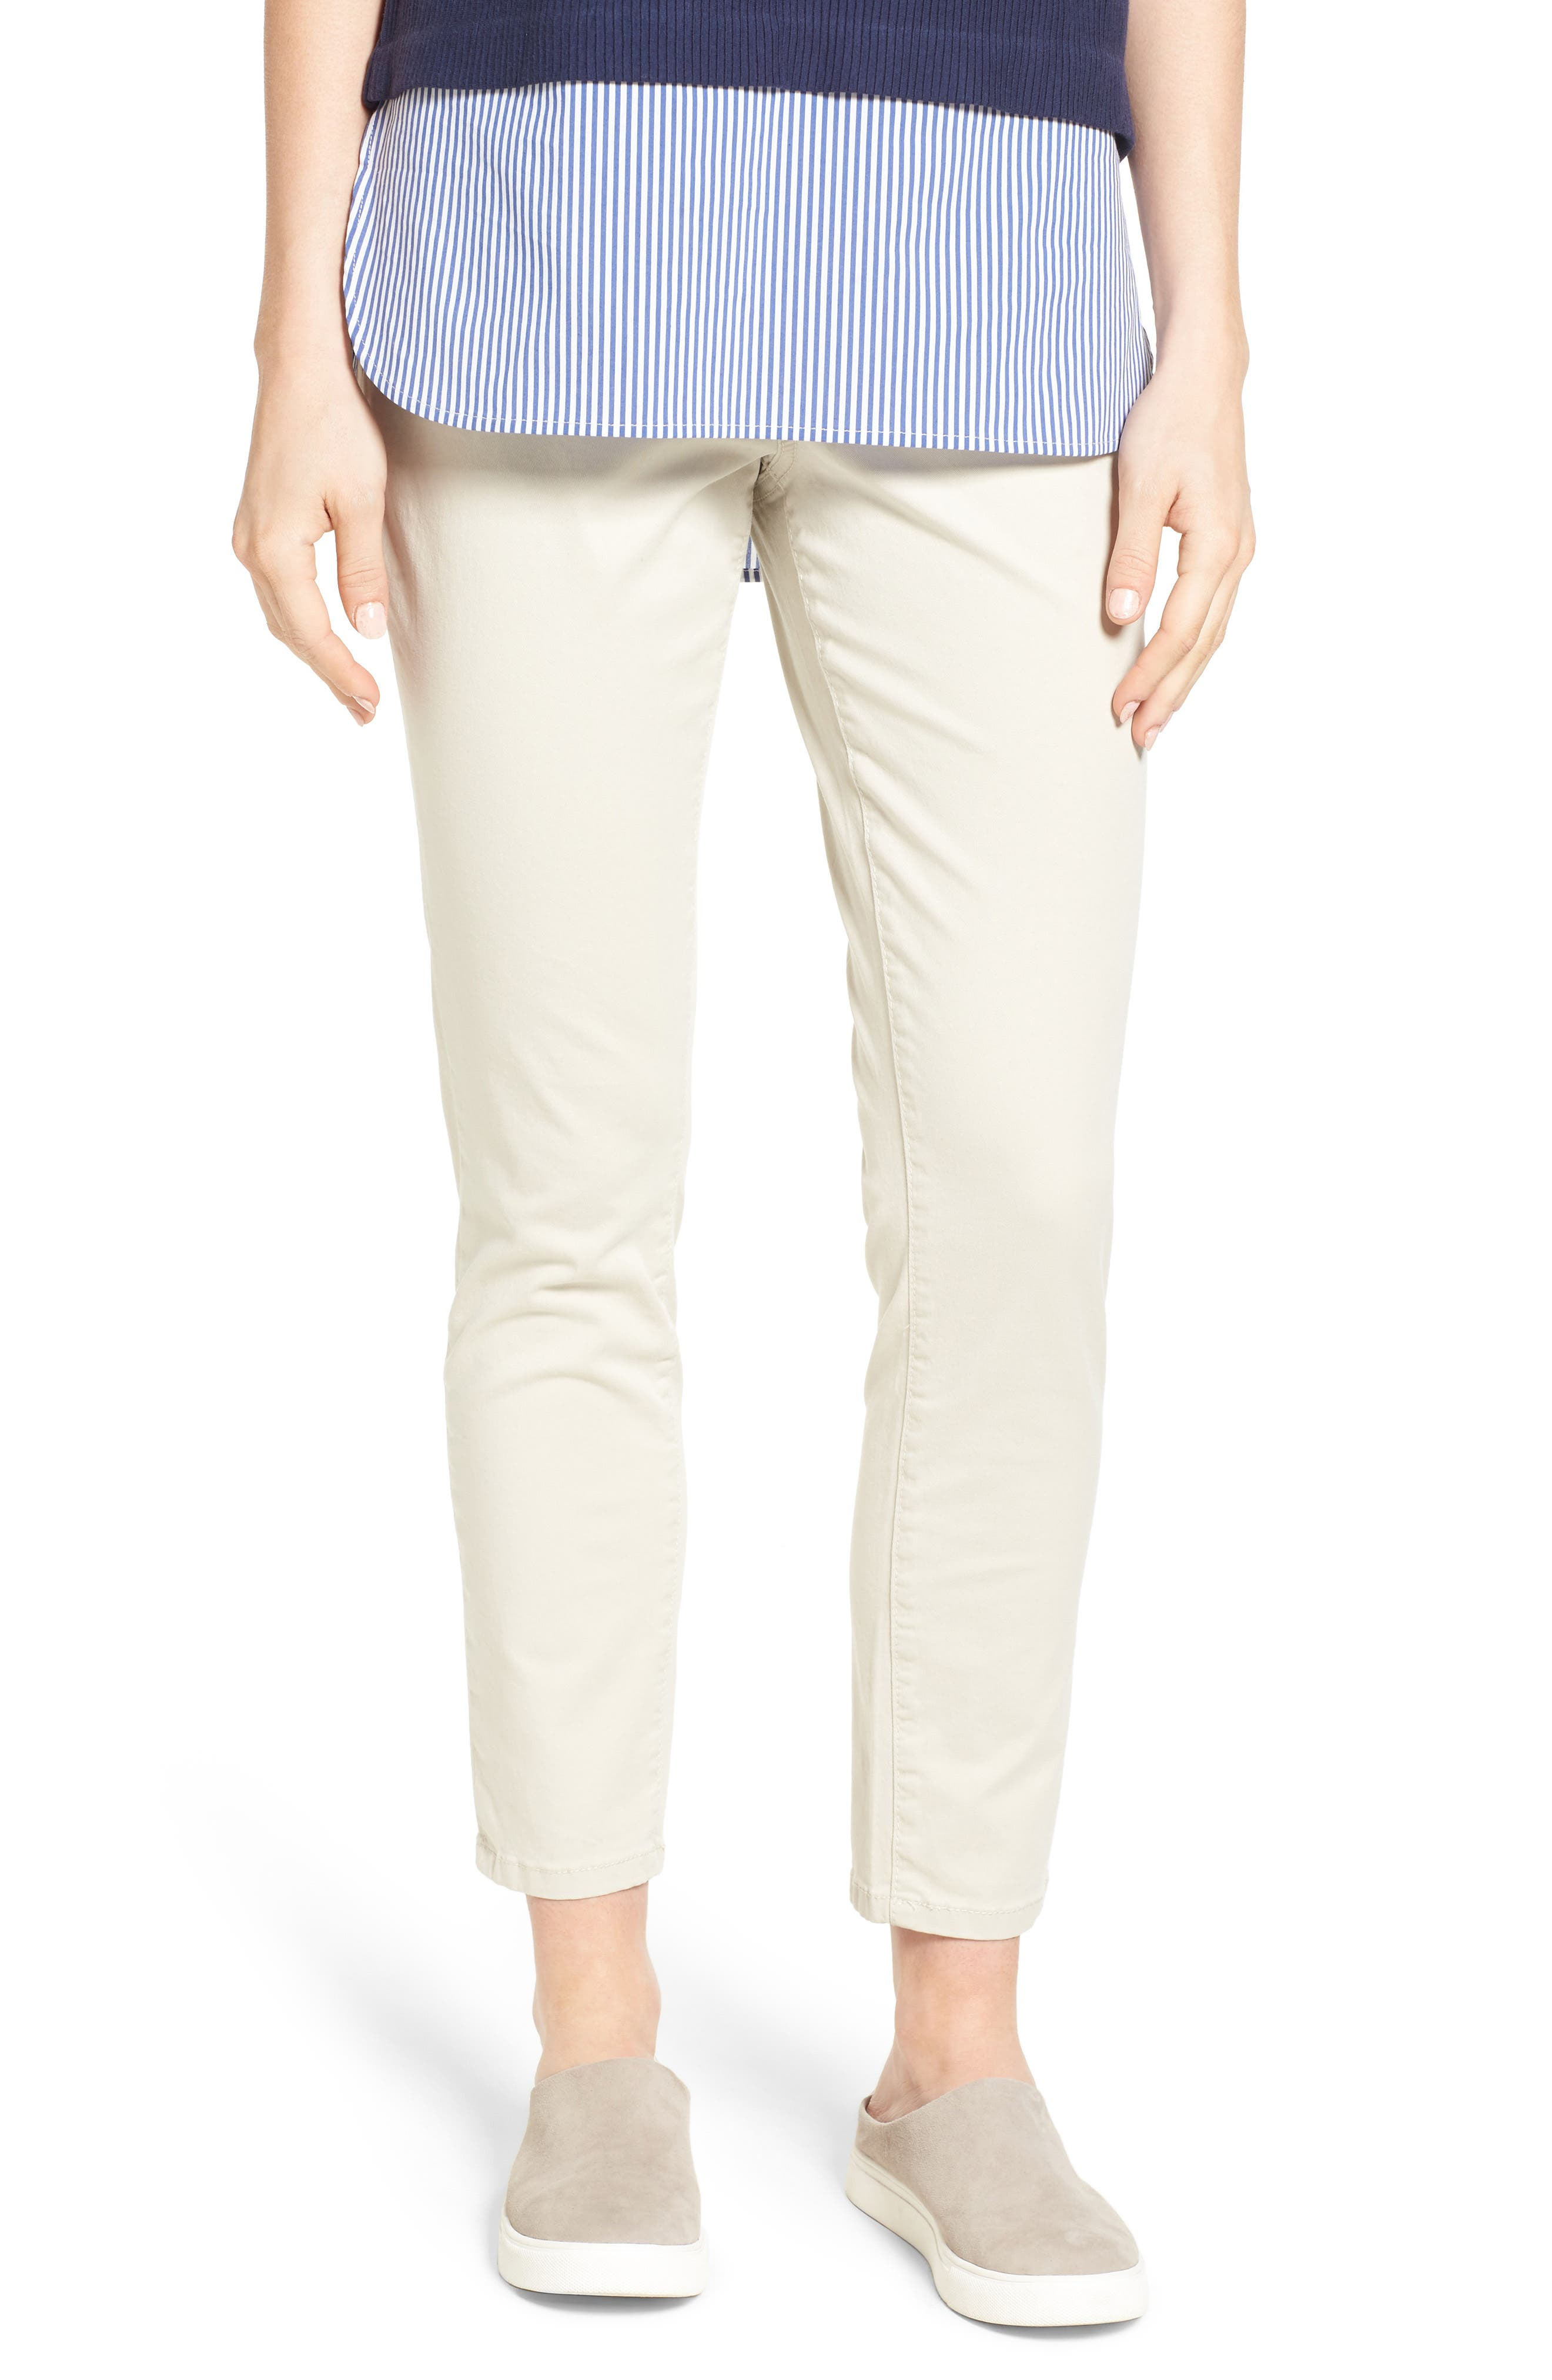 Jag Jeans Amelia Pull-On Slim Stretch Twill Ankle Pants (Regular & Petite)